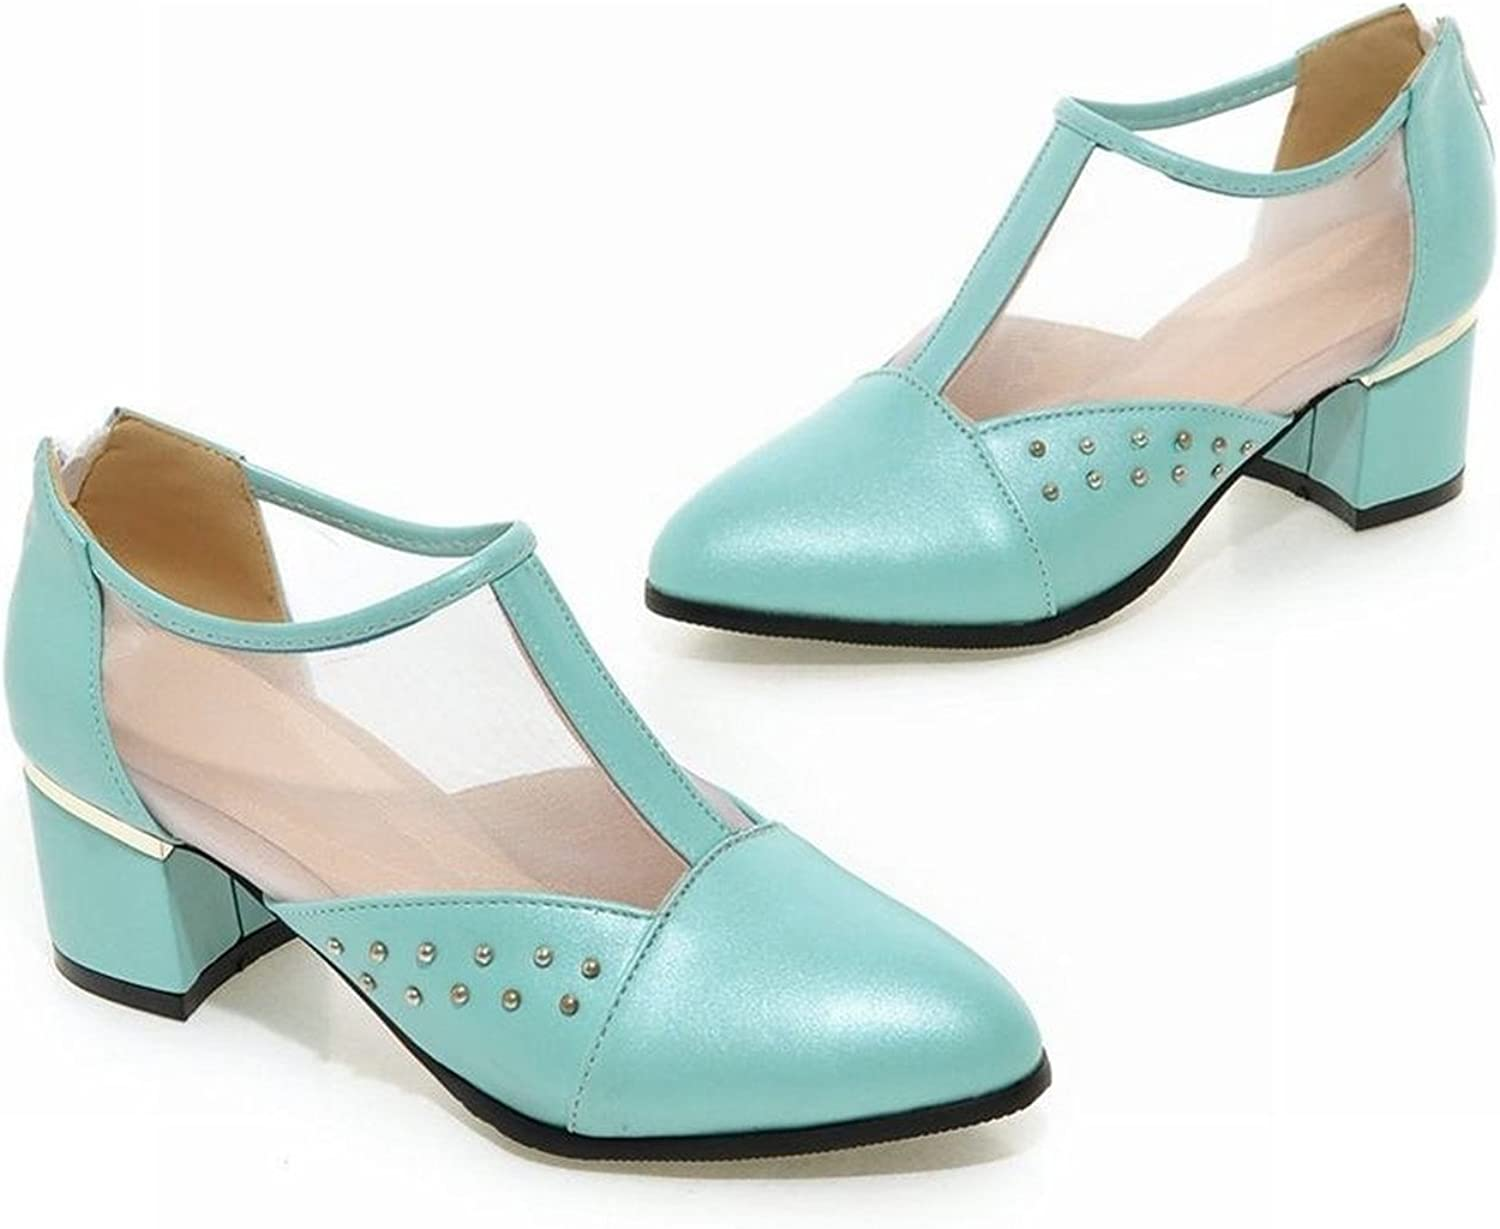 Tirahse Sweet Women's Studded Voile mesh Zip Fashion Pointed Toe Chunky mid Heel Casual shoes